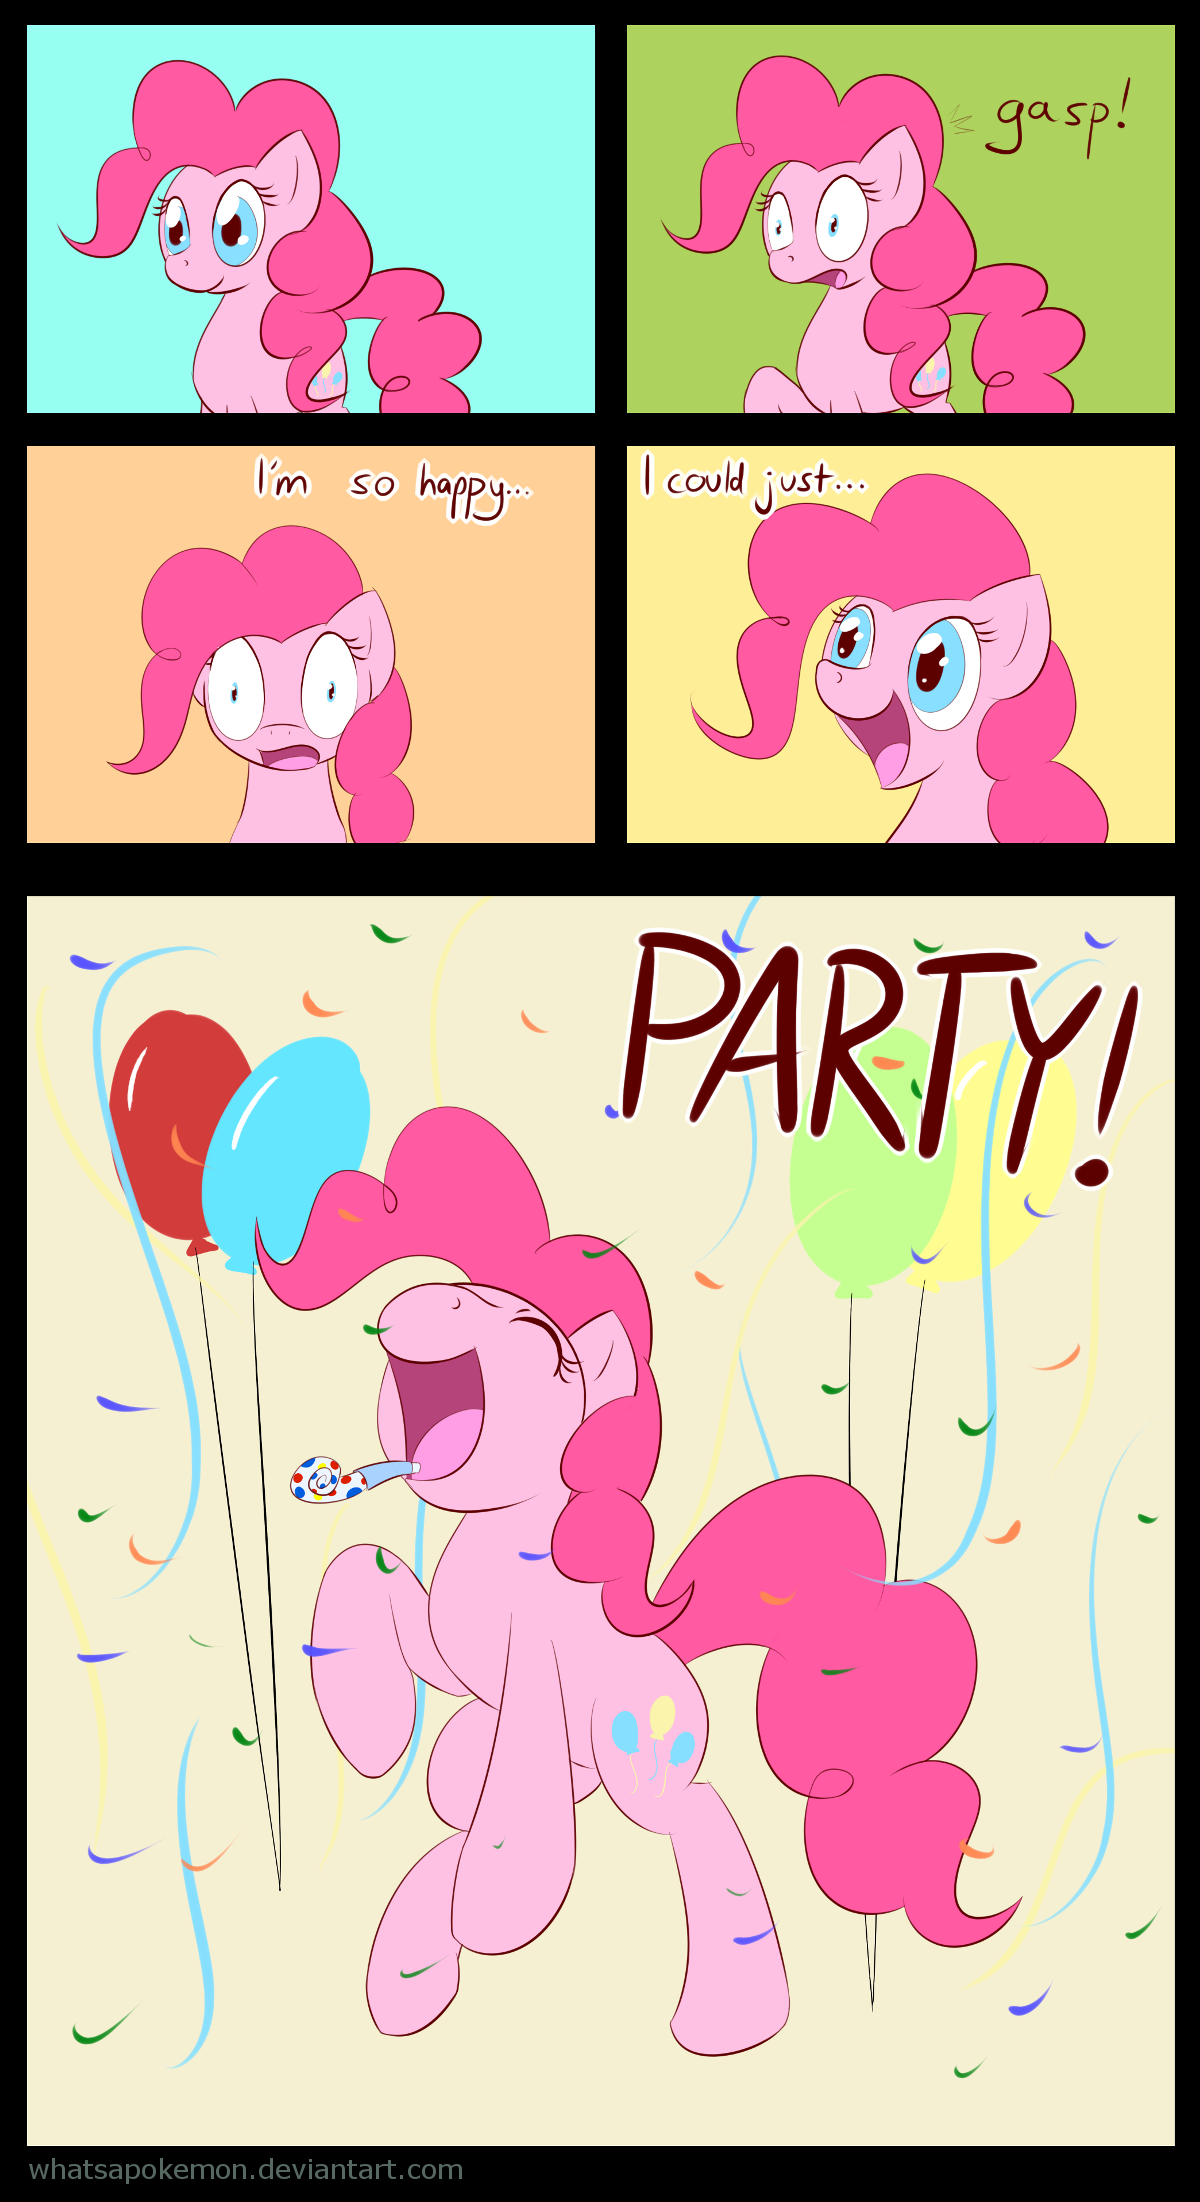 So happy... by Whatsapokemon